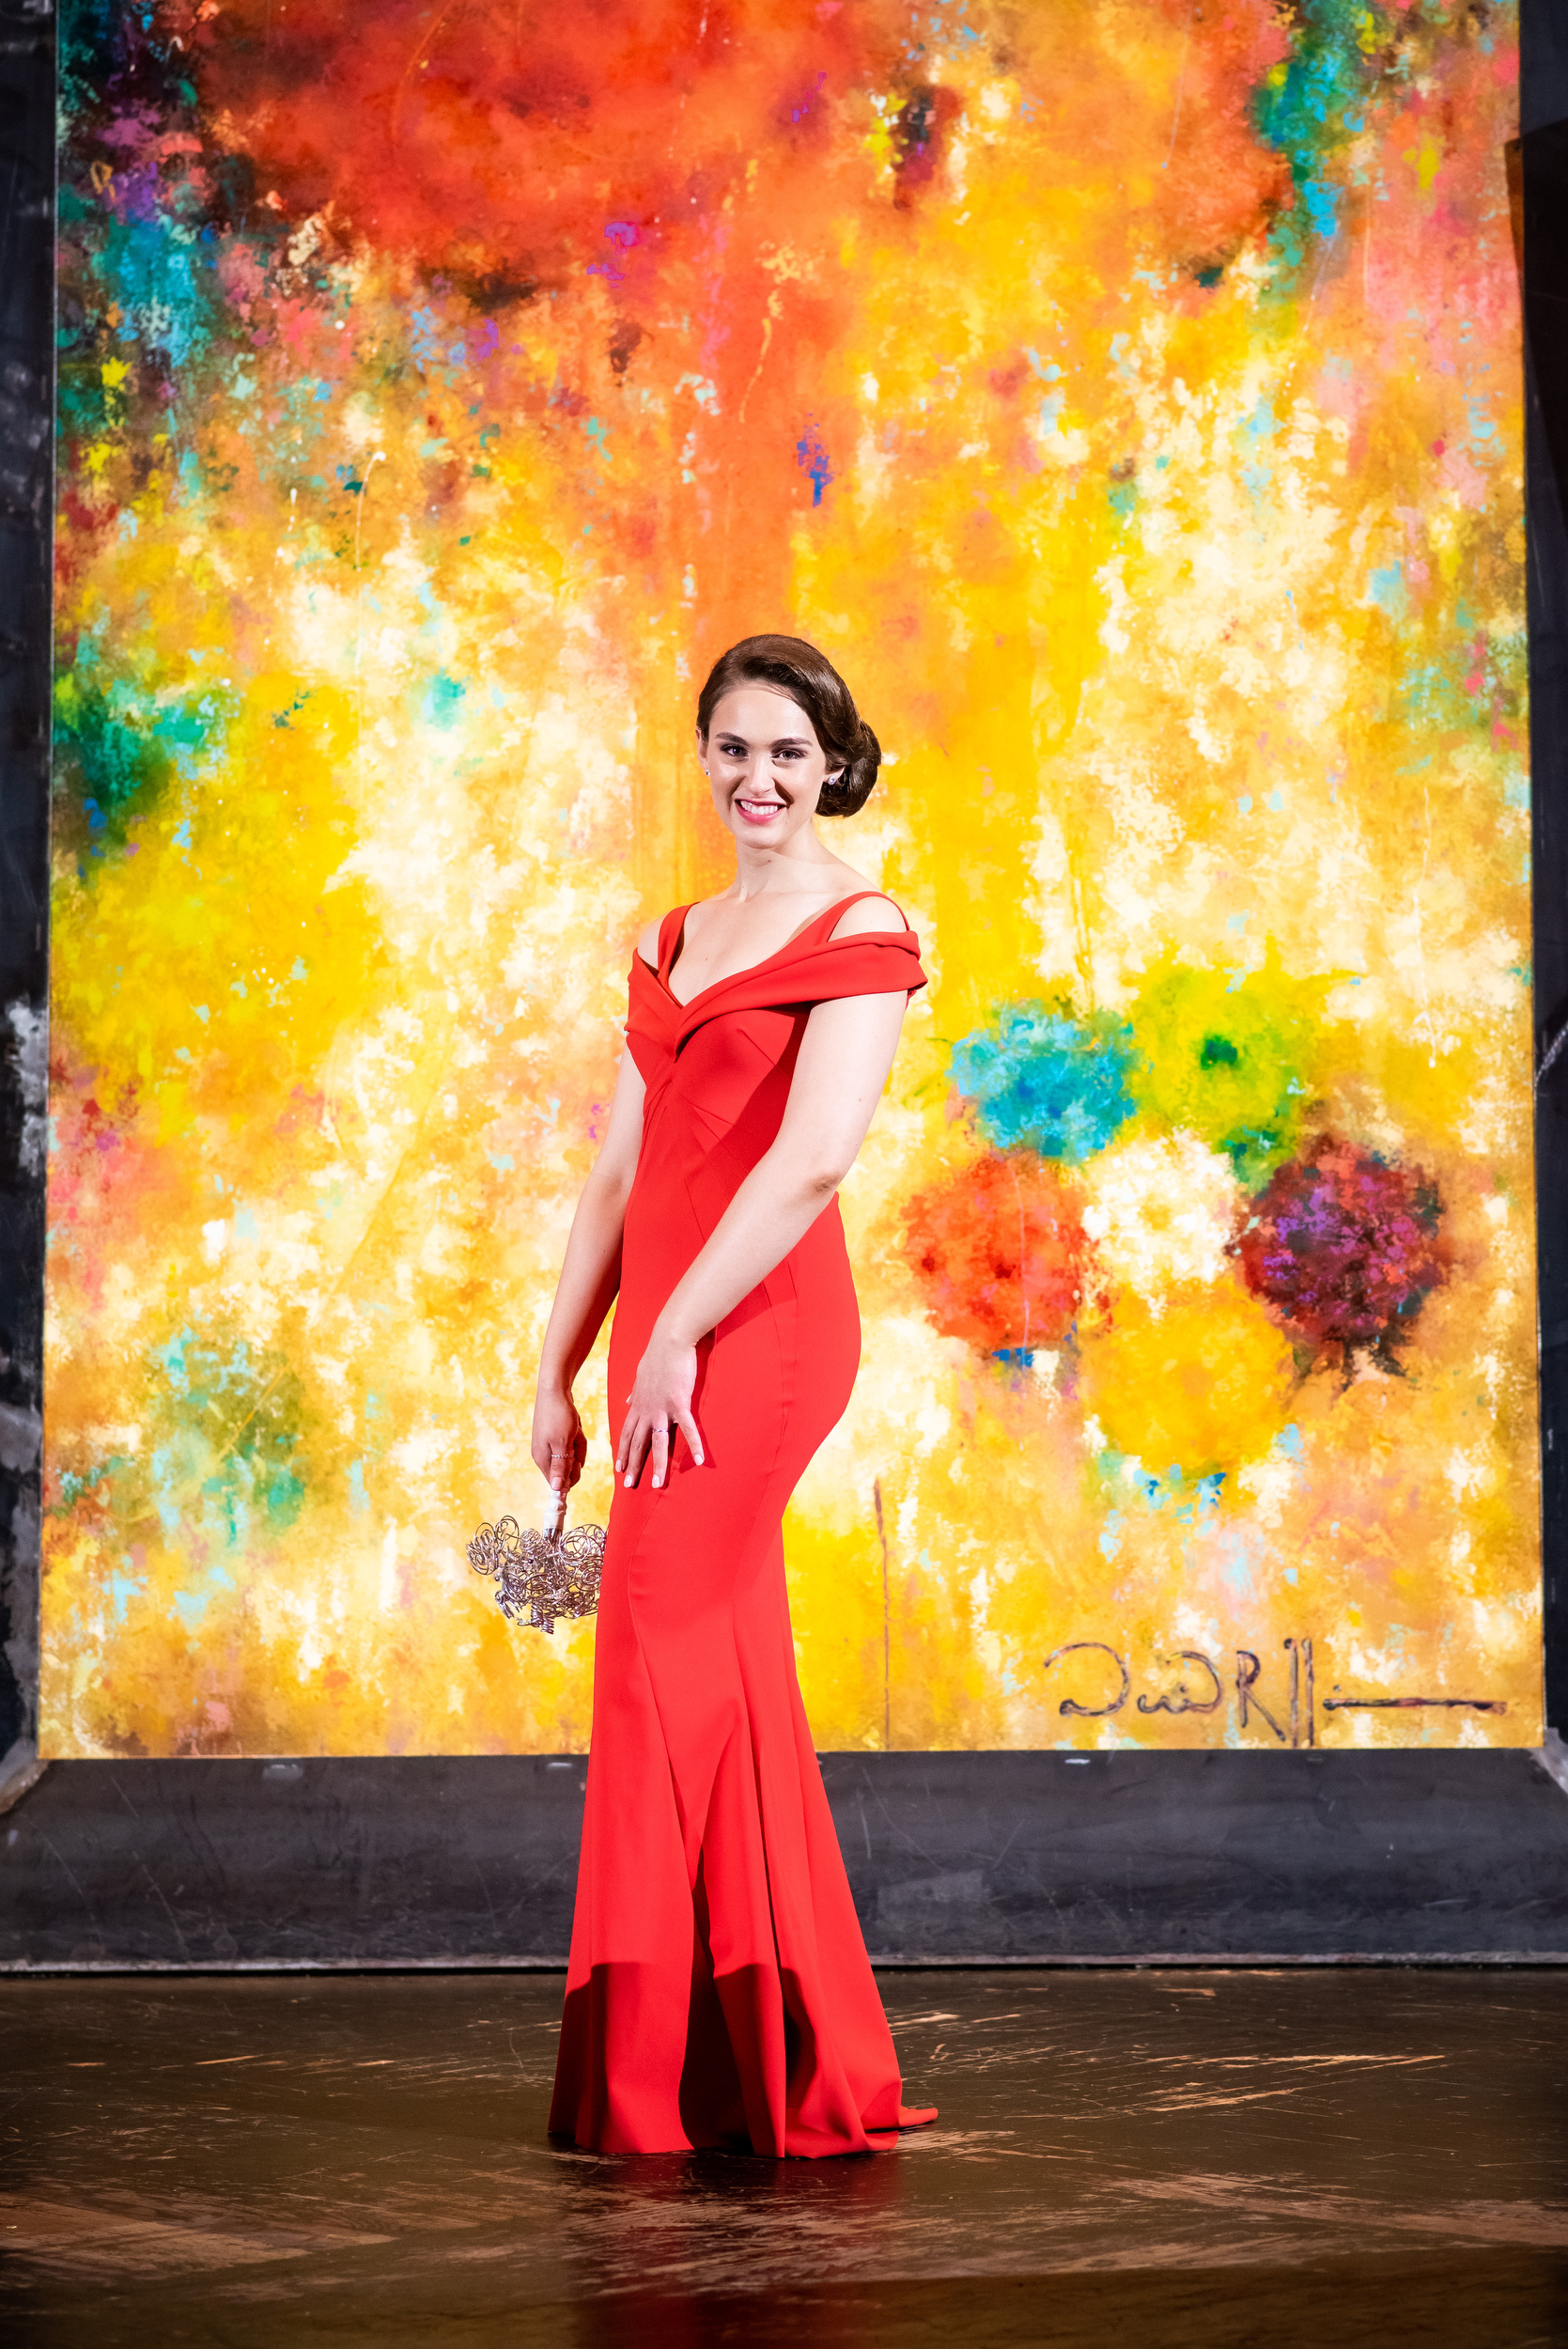 Bridal portrait of bride in red wedding dress for Carnivale Chicago wedding captured by J Brown Photography